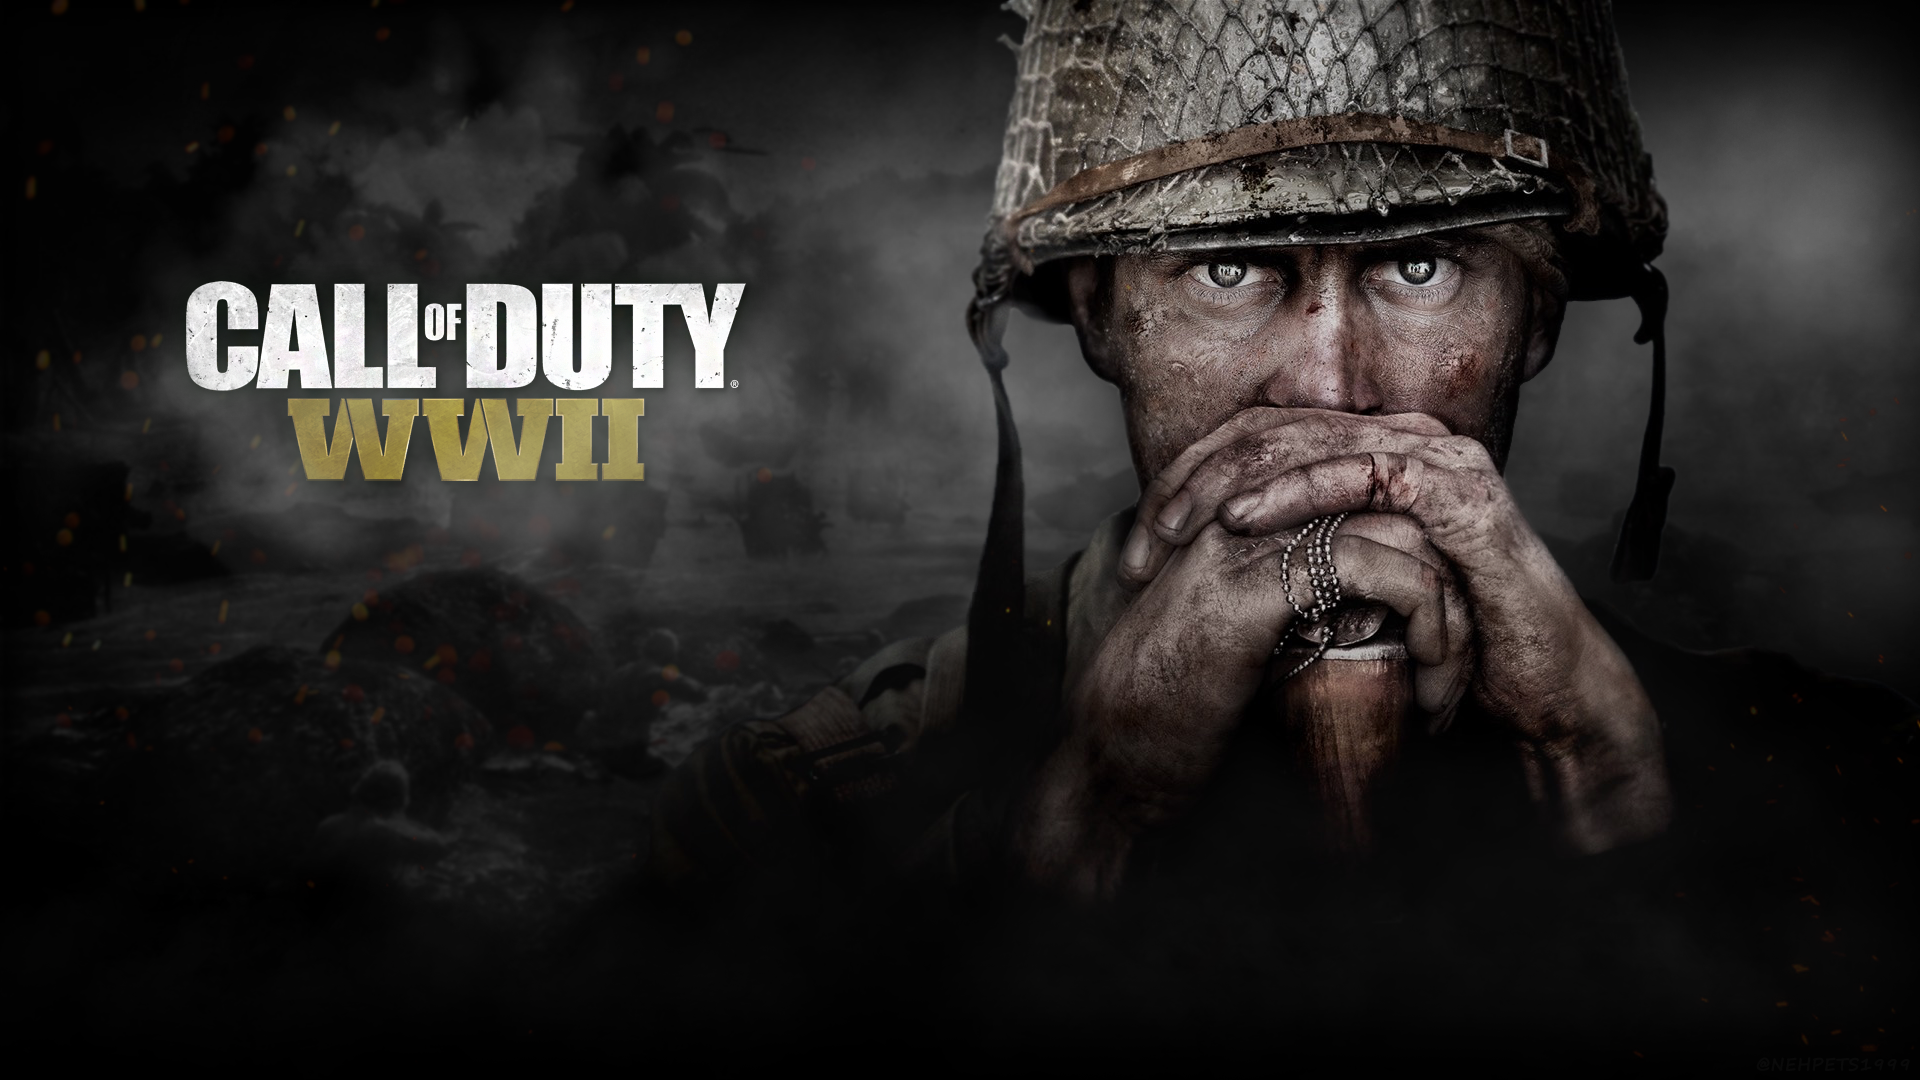 call of duty wwii wallpaper 61207